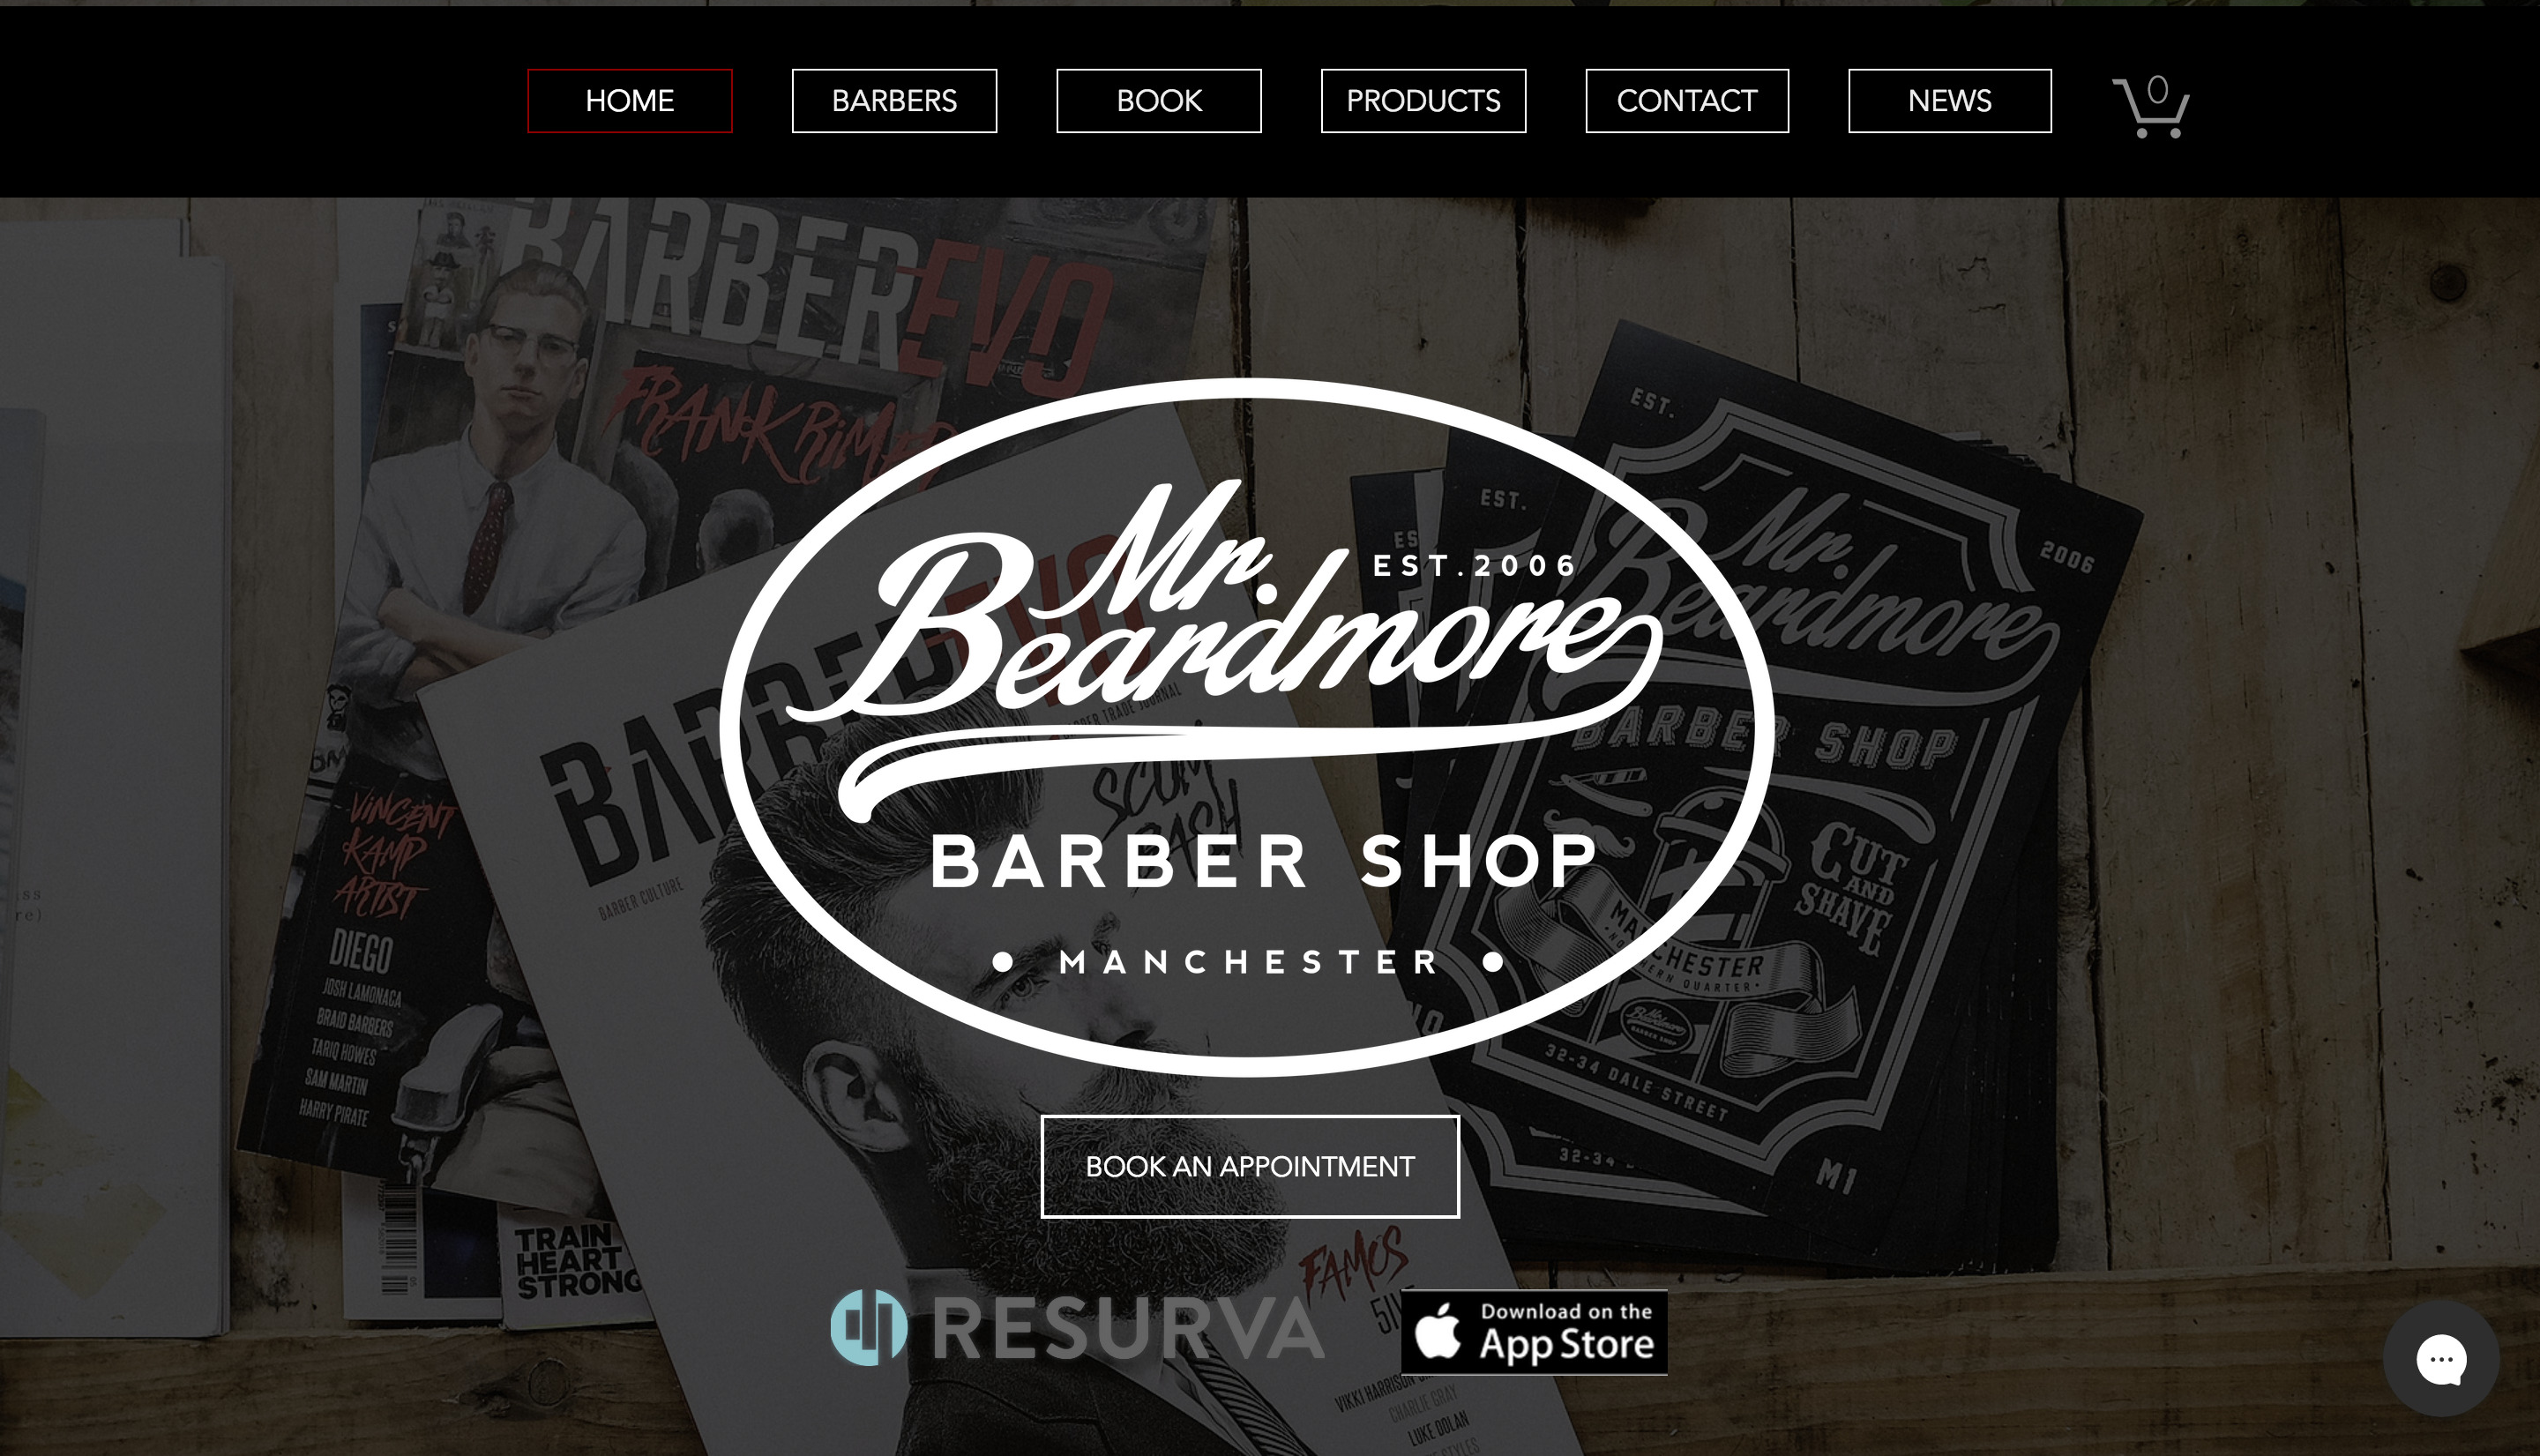 Mr Beardmores Barber Shop